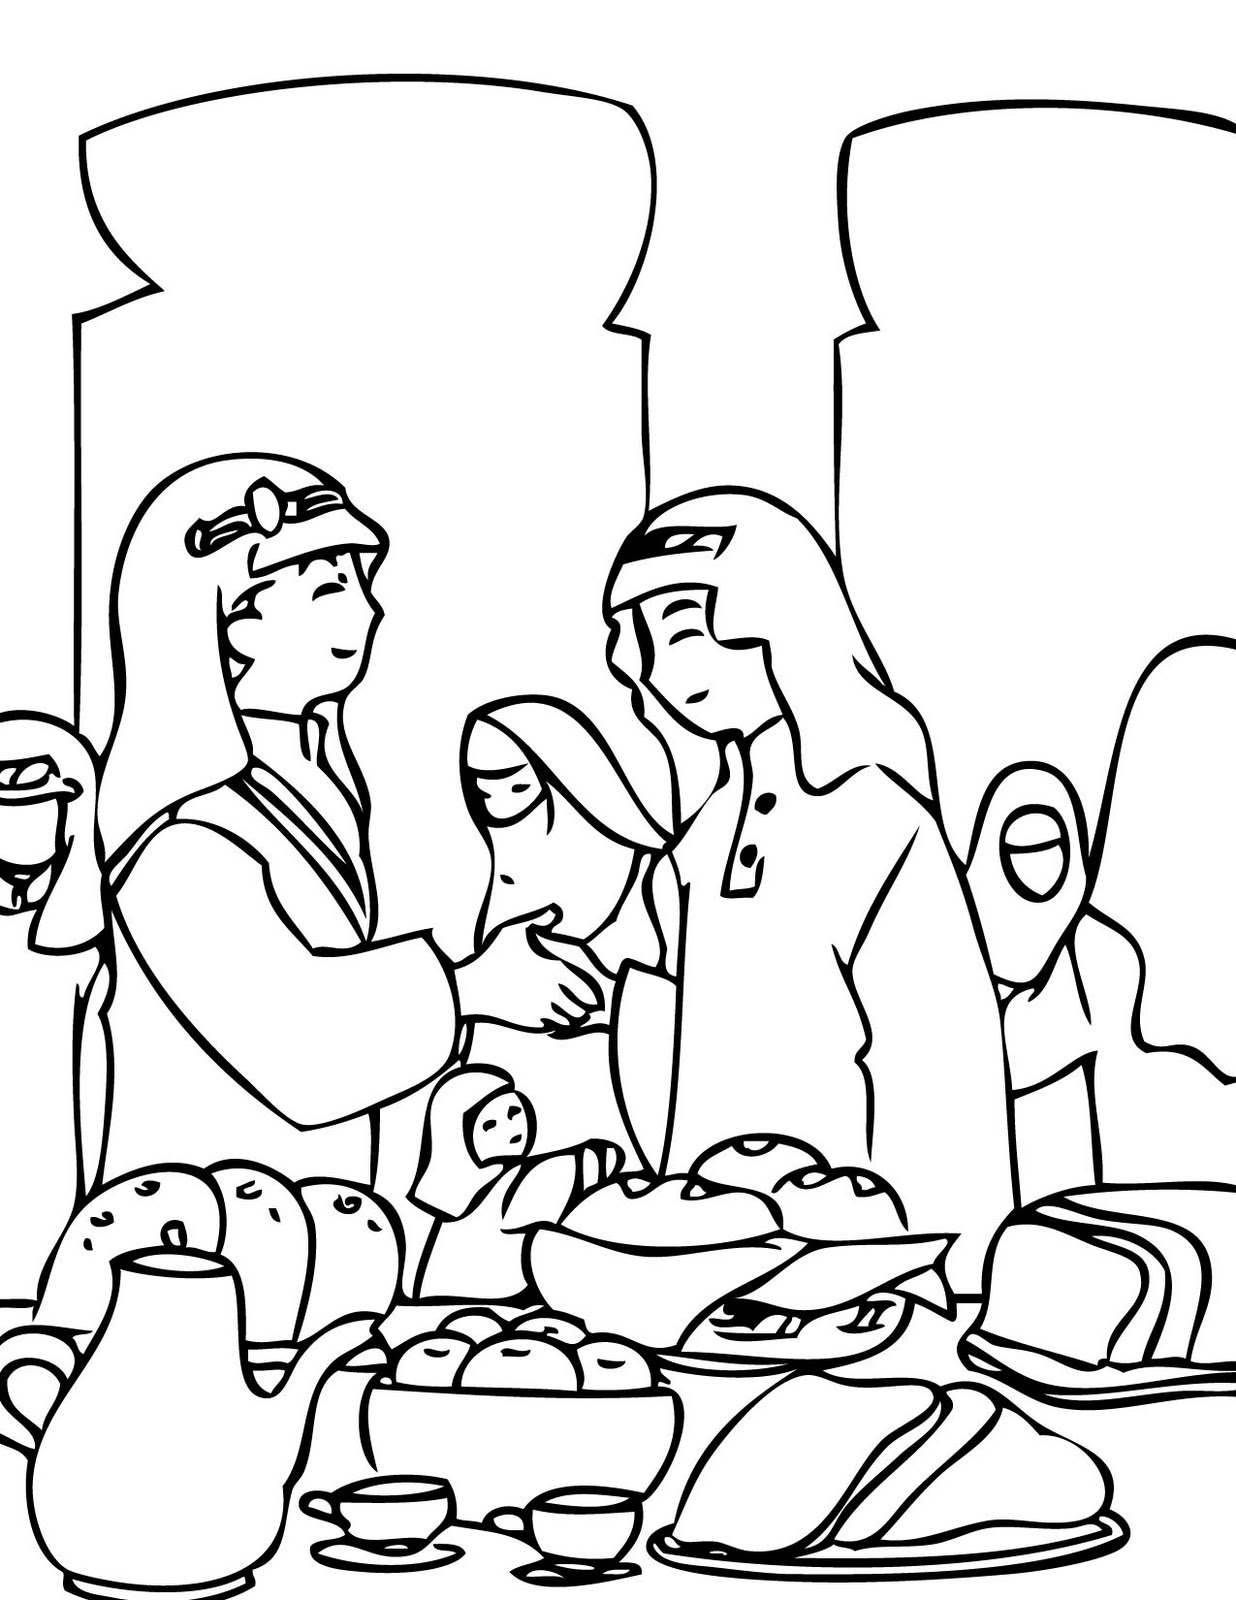 muslim holidays coloring pages - photo#4